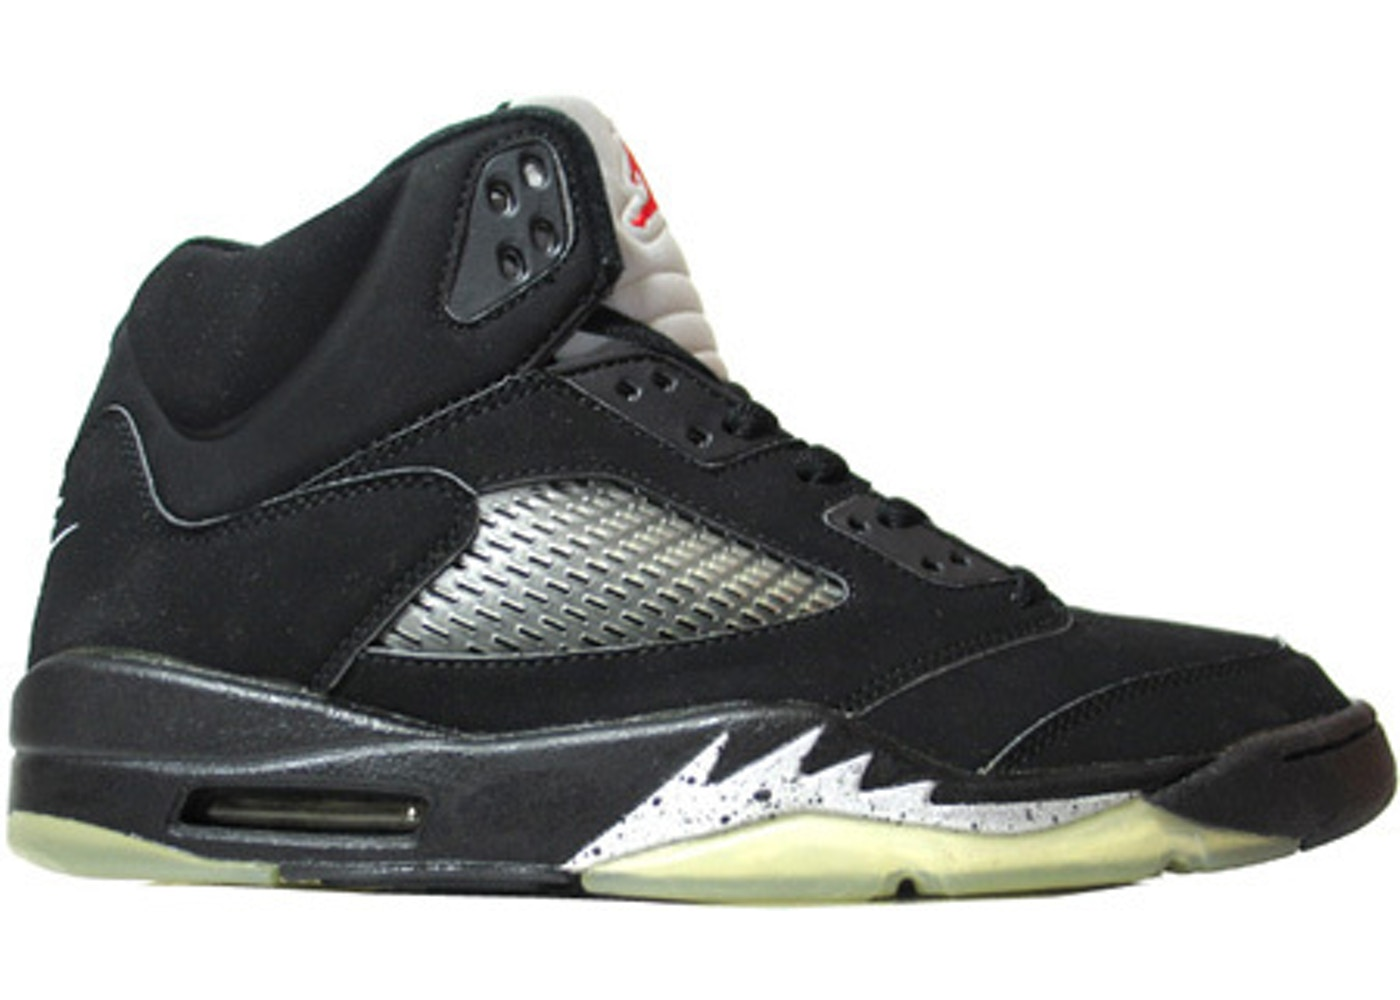 new product c32c4 2b527 Jordan 5 Retro Black Metallic (2000)